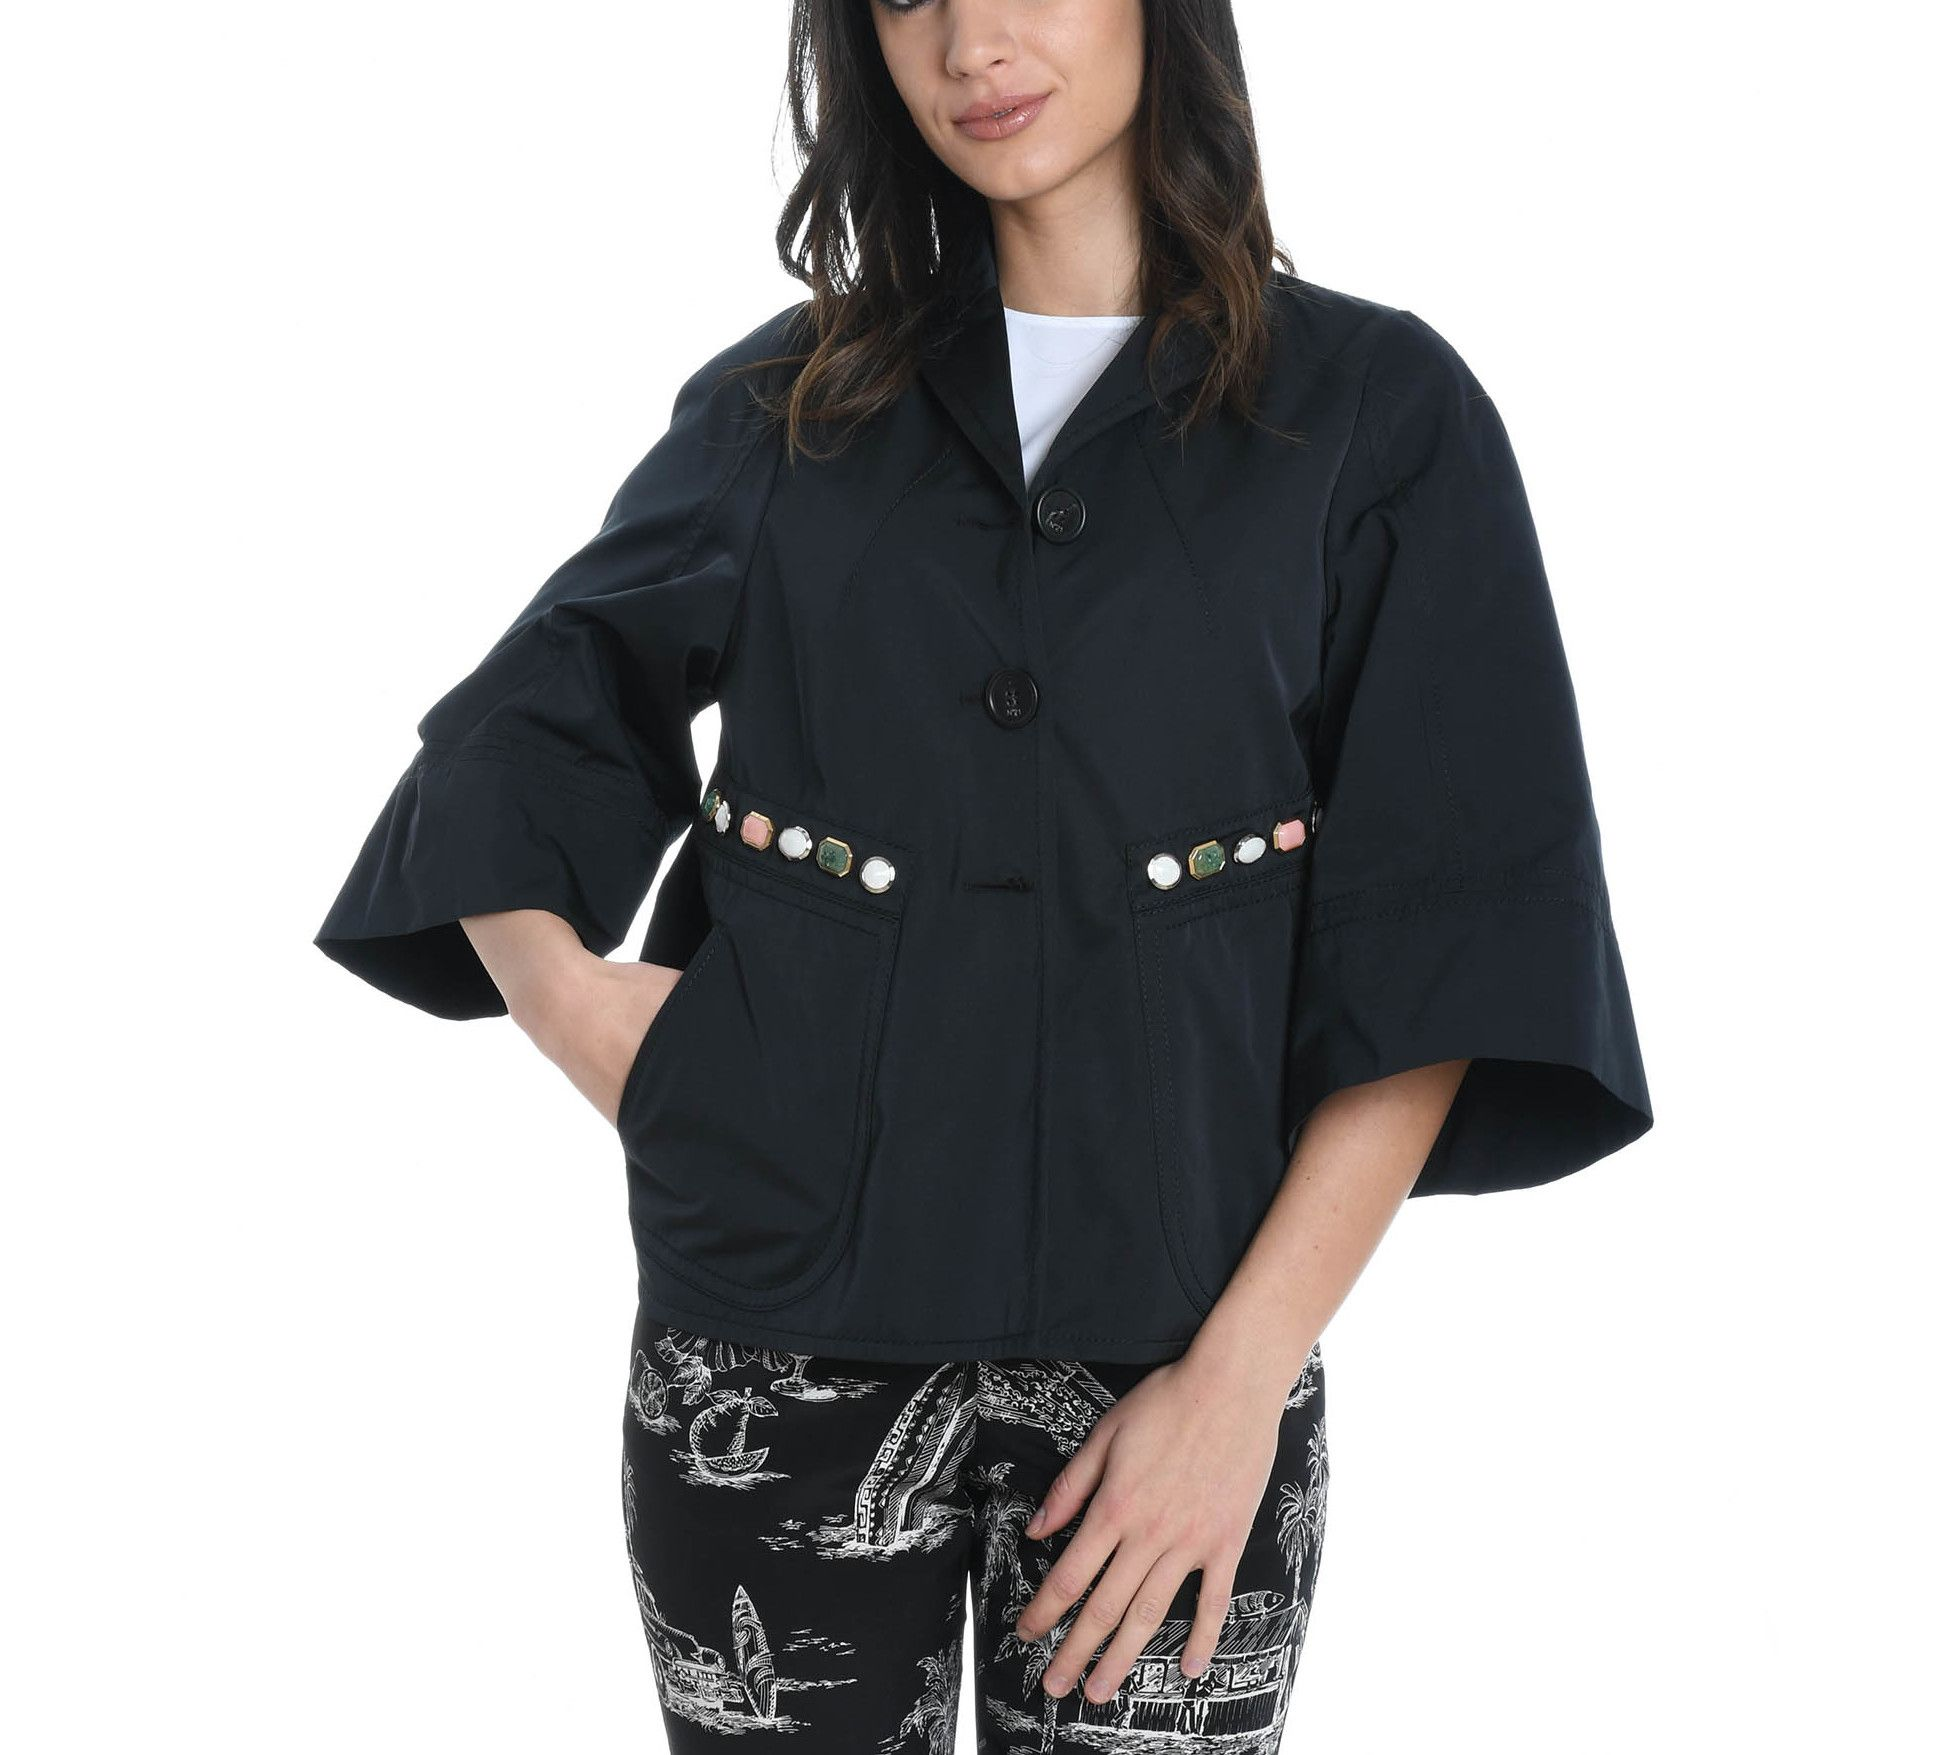 N°21 Black Polyester Outerwear Jacket